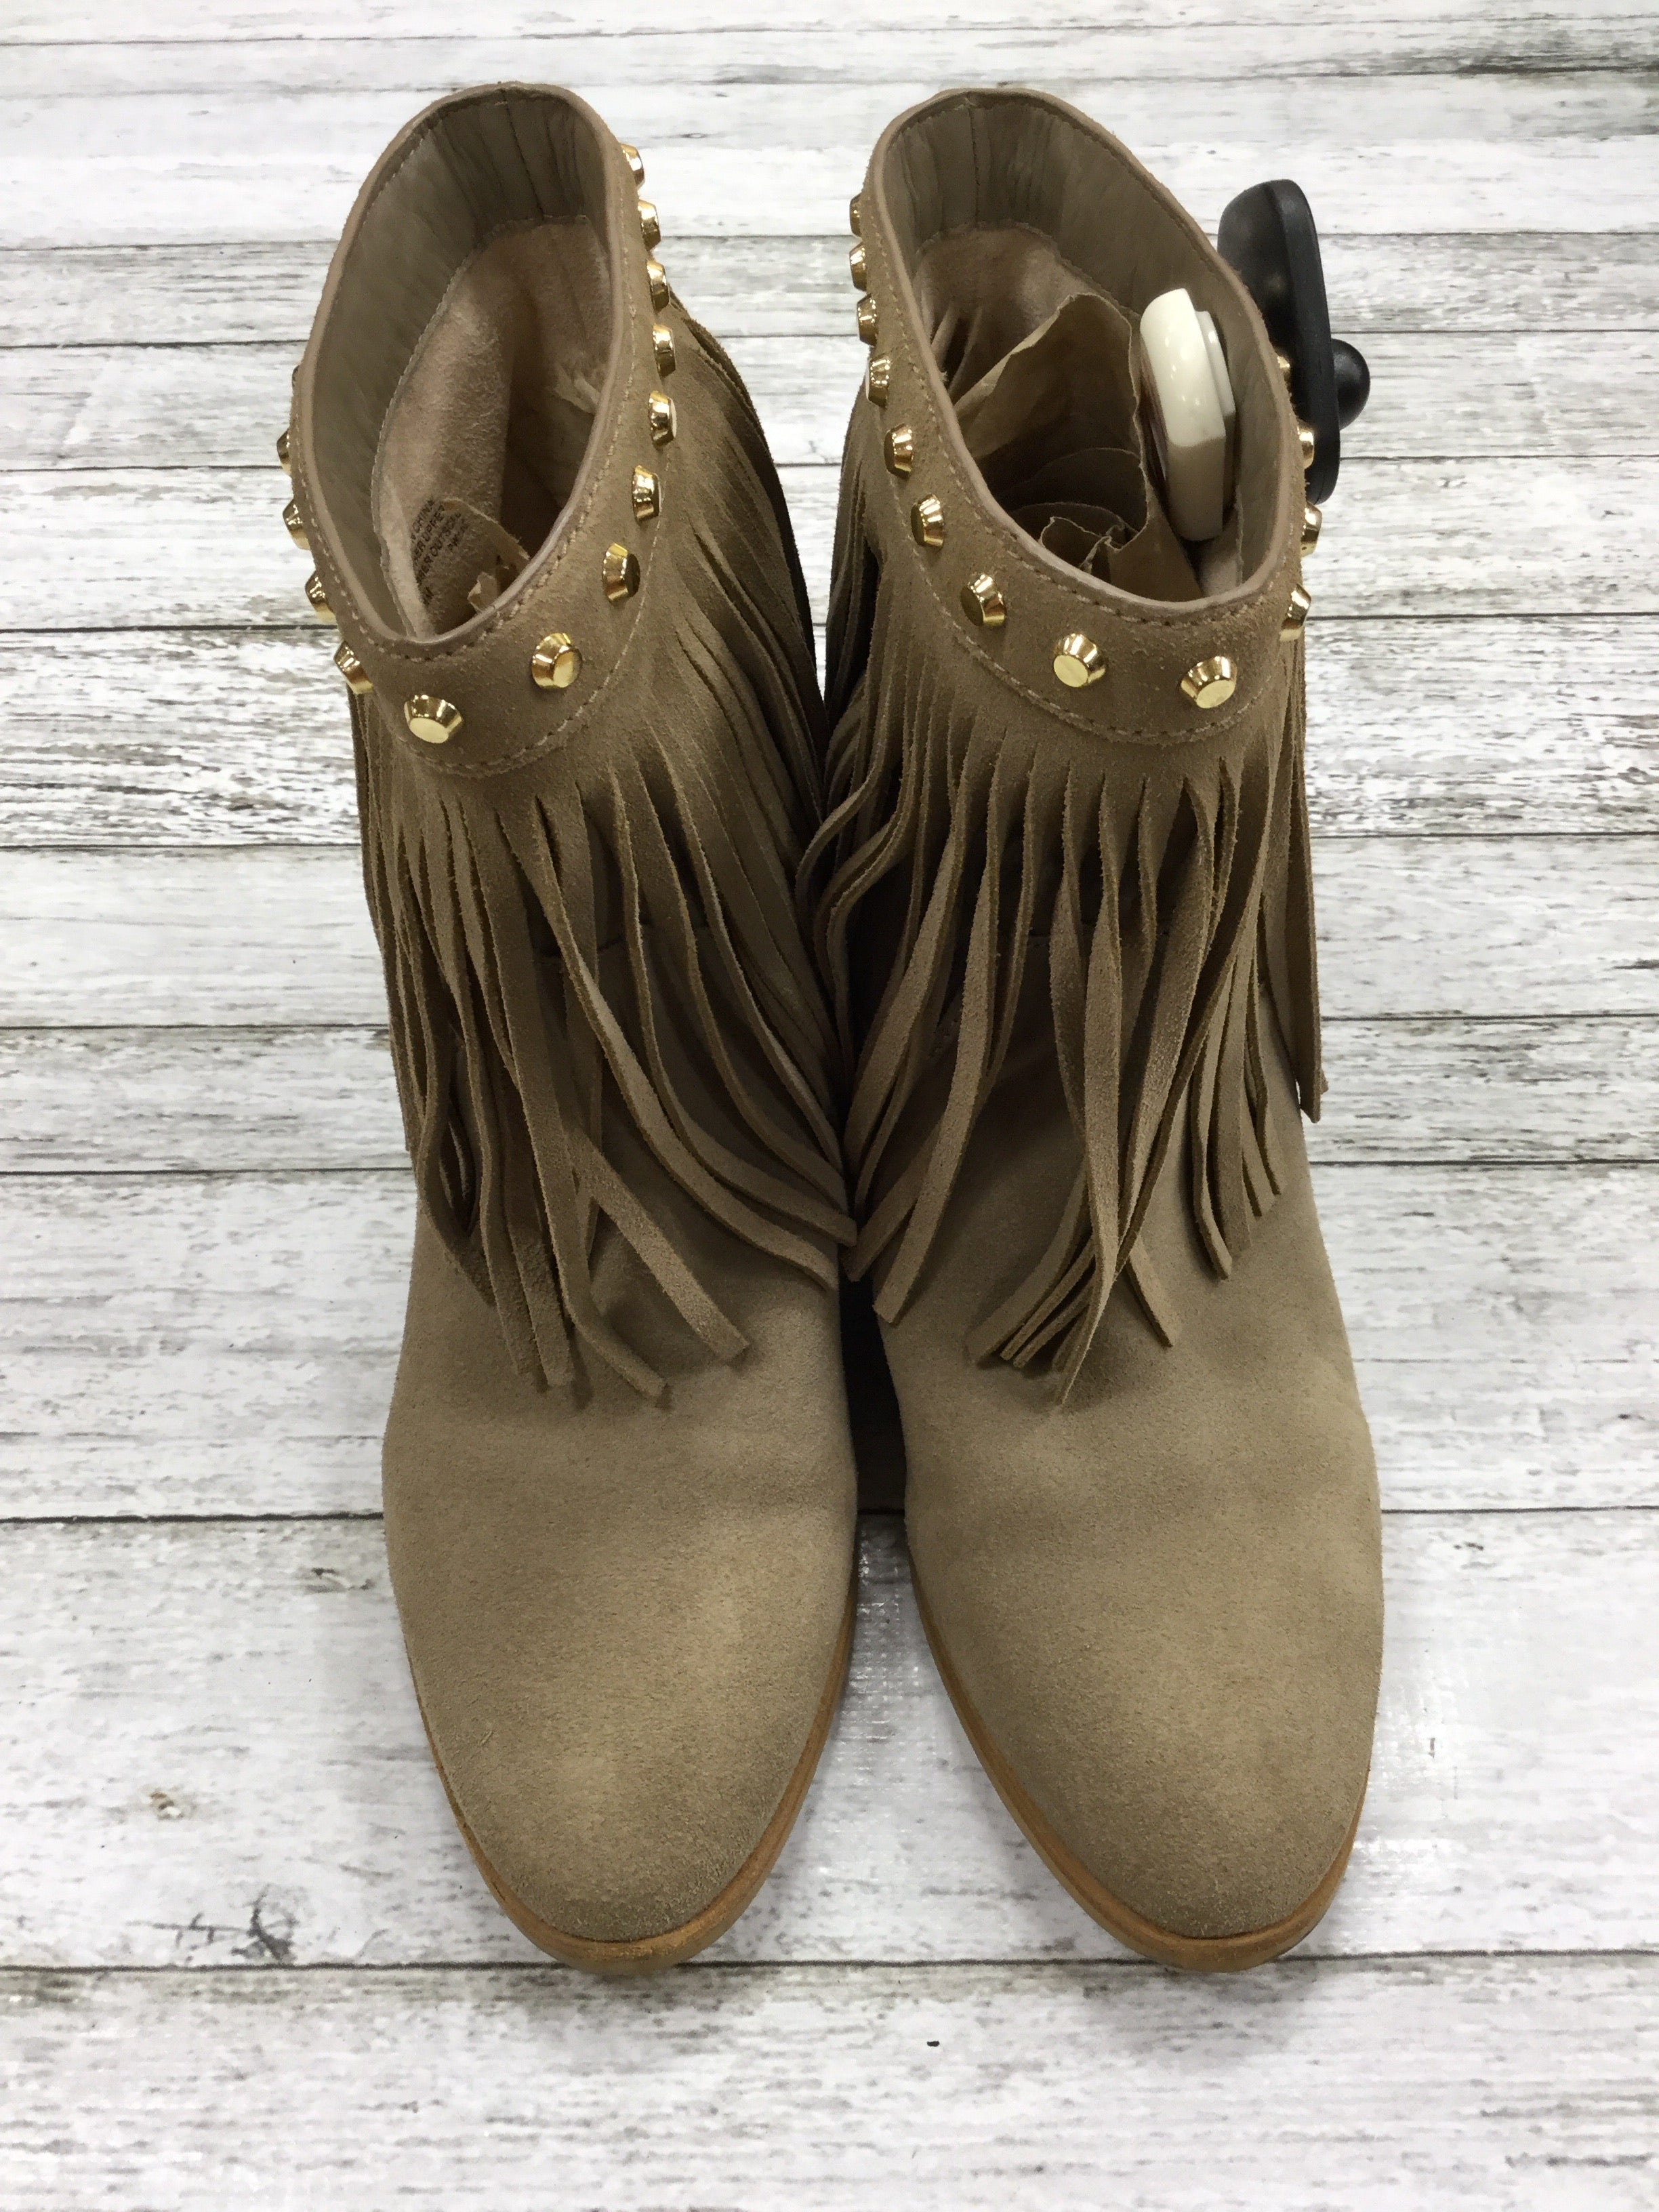 Primary Photo - BRAND: MICHAEL BY MICHAEL KORS , STYLE: BOOTS ANKLE , COLOR: TAN , SIZE: 7.5 , OTHER INFO: AS IS , SKU: 127-4559-13453